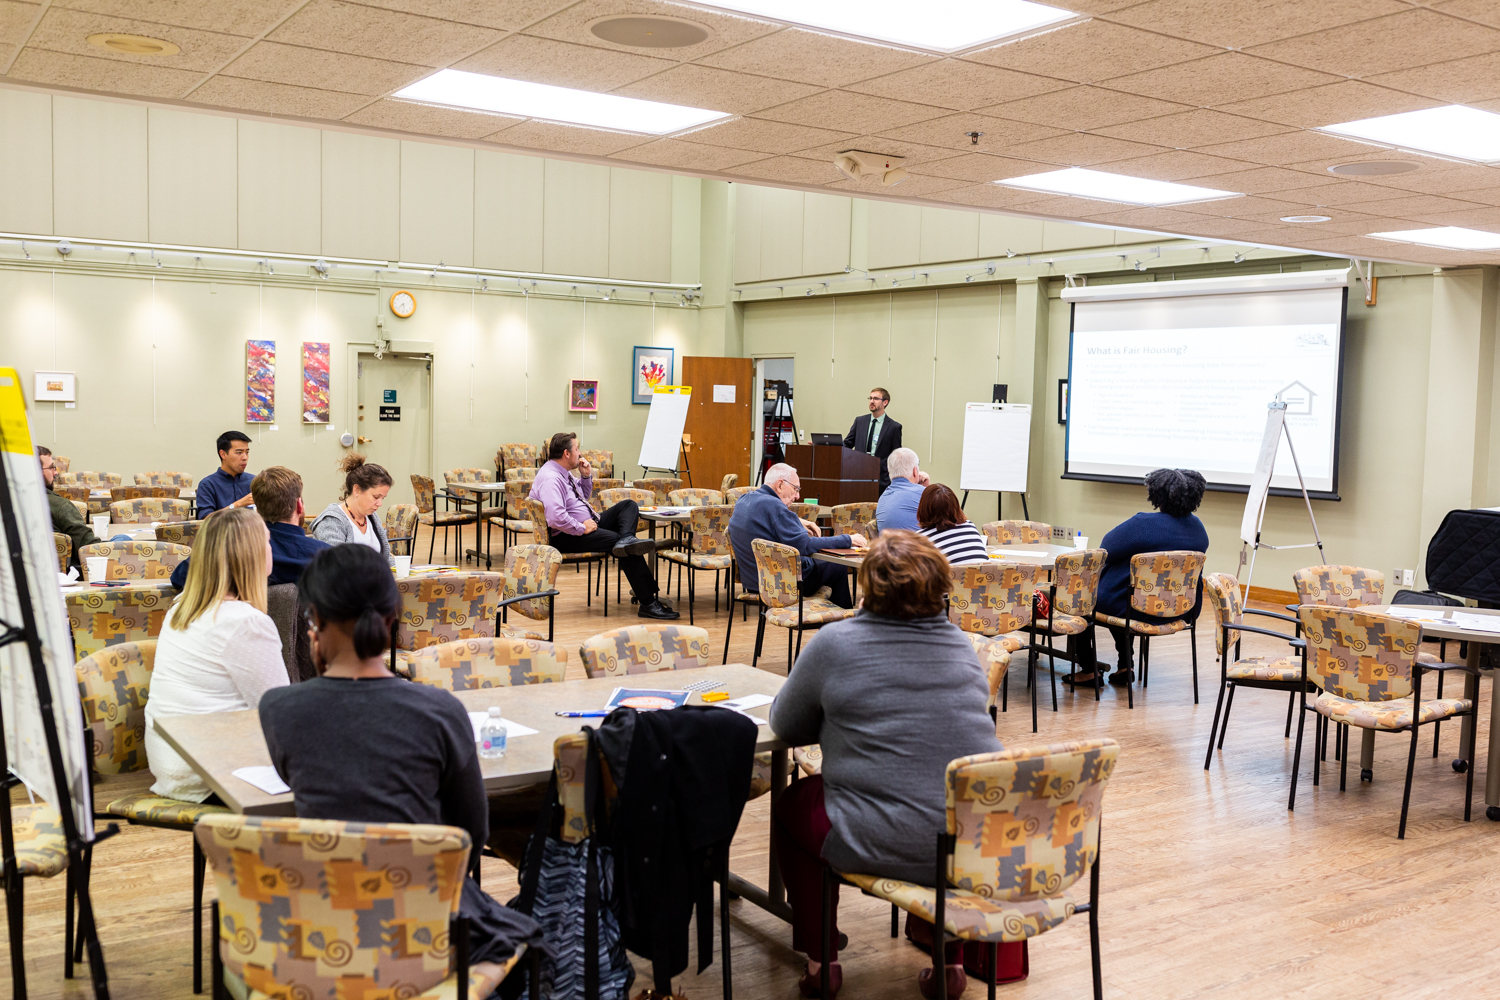 Participants in a meeting about issues regarding fair housing in Iowa City listen to Kirk Lehman present on the issue at the Iowa City Senior Center on Thursday, Sept. 27, 2018.